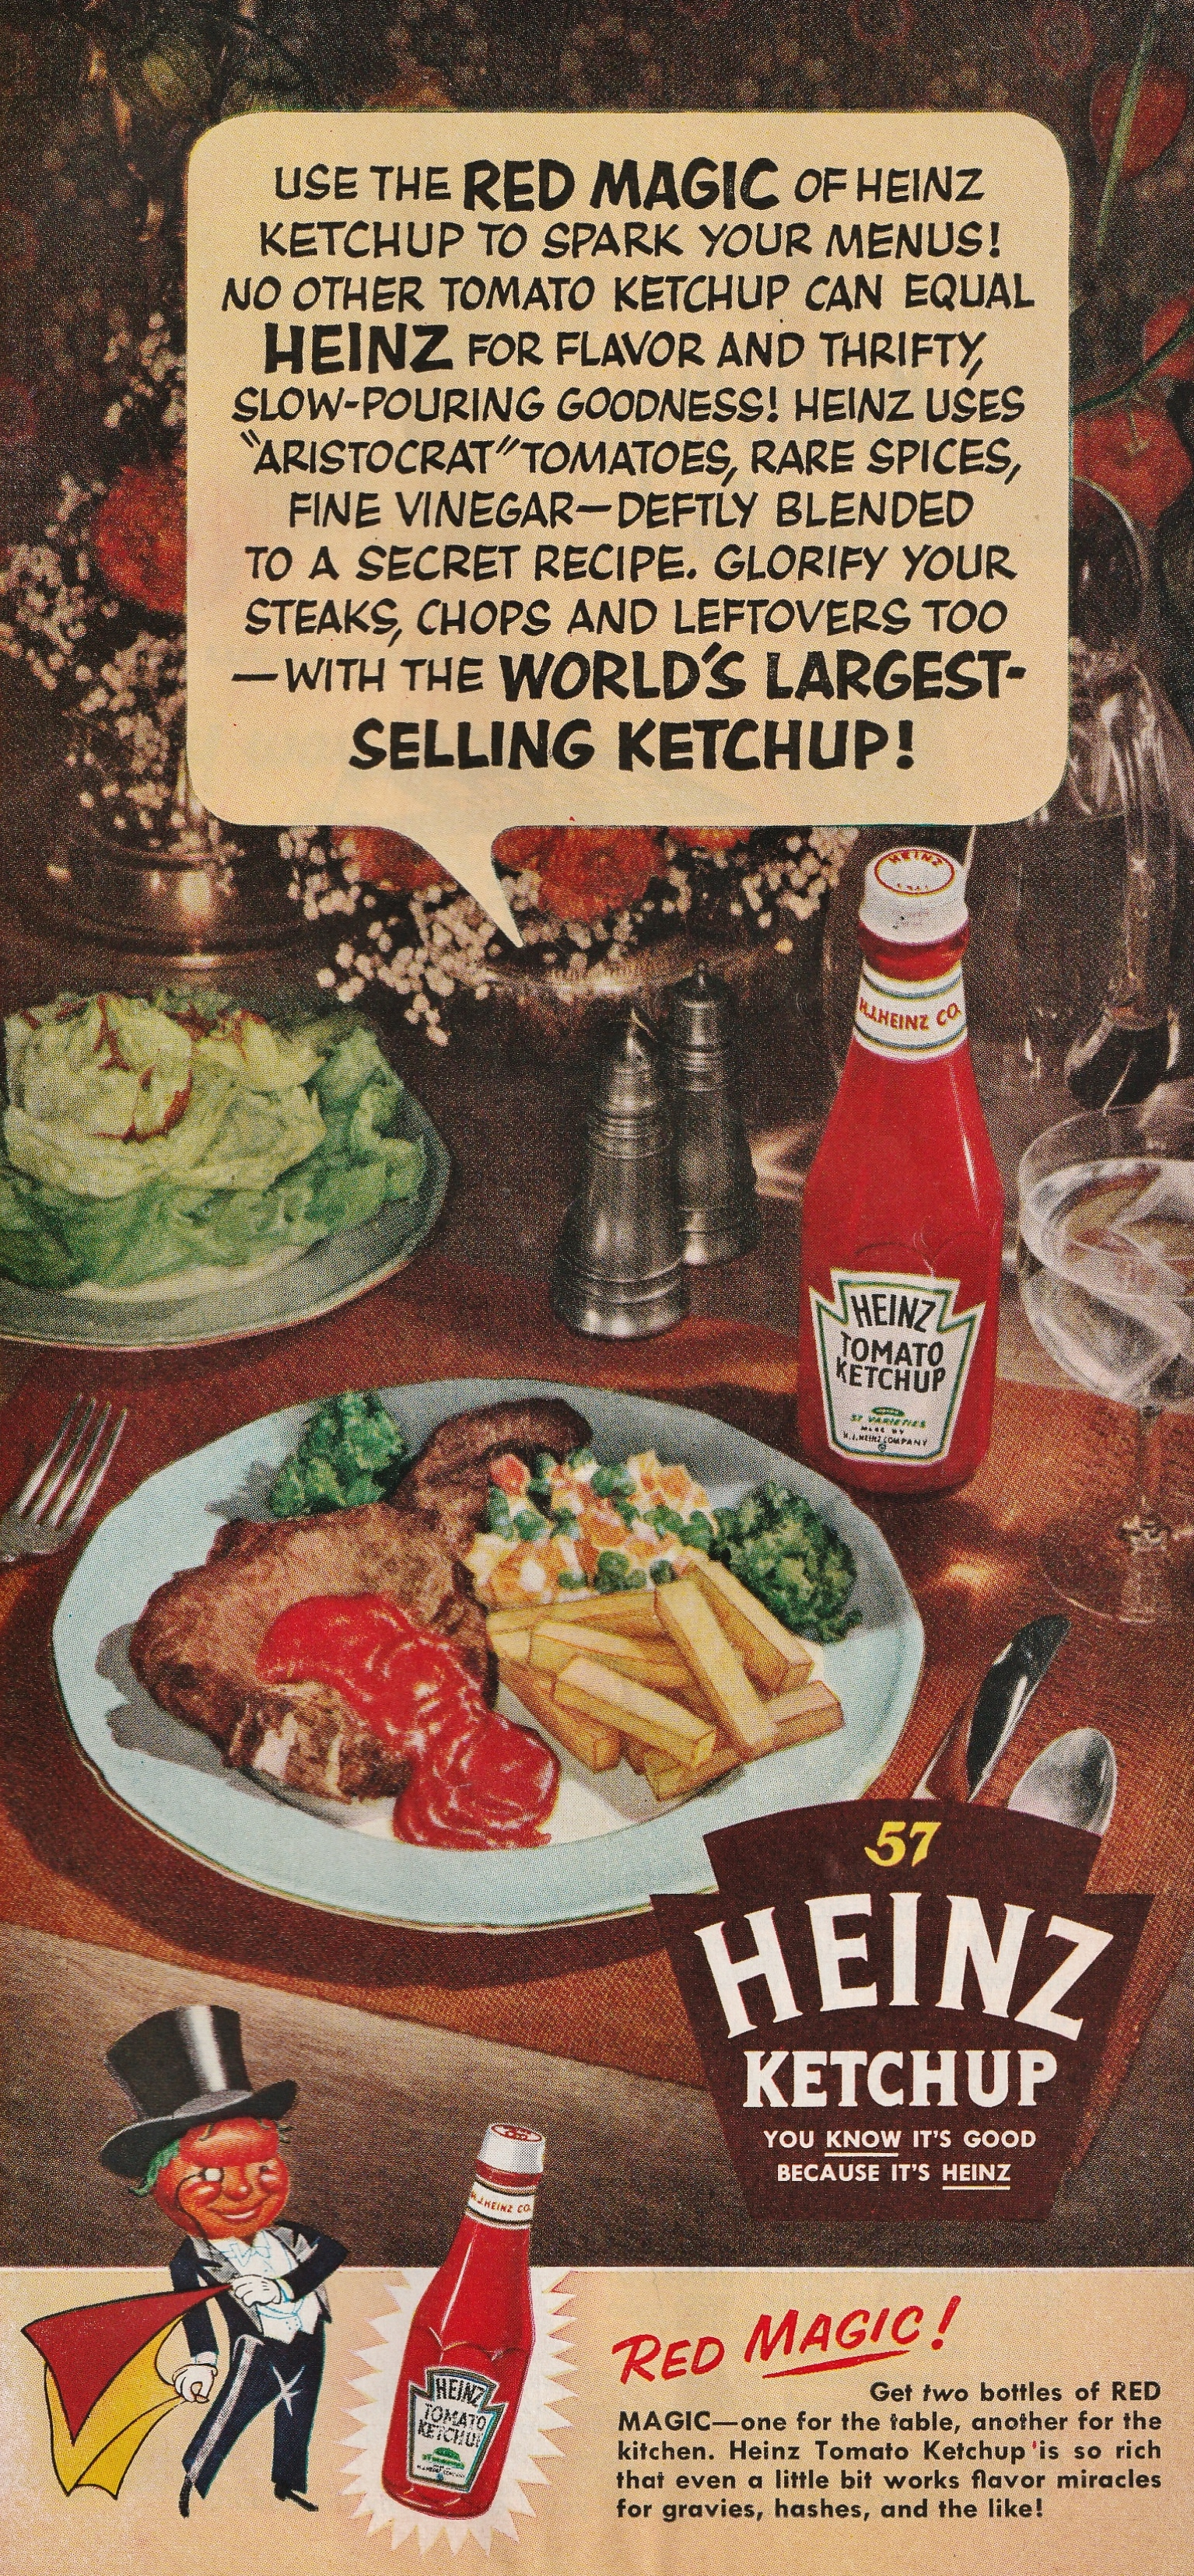 Heinz Ketchup - published in Good Housekeeping - March 1954